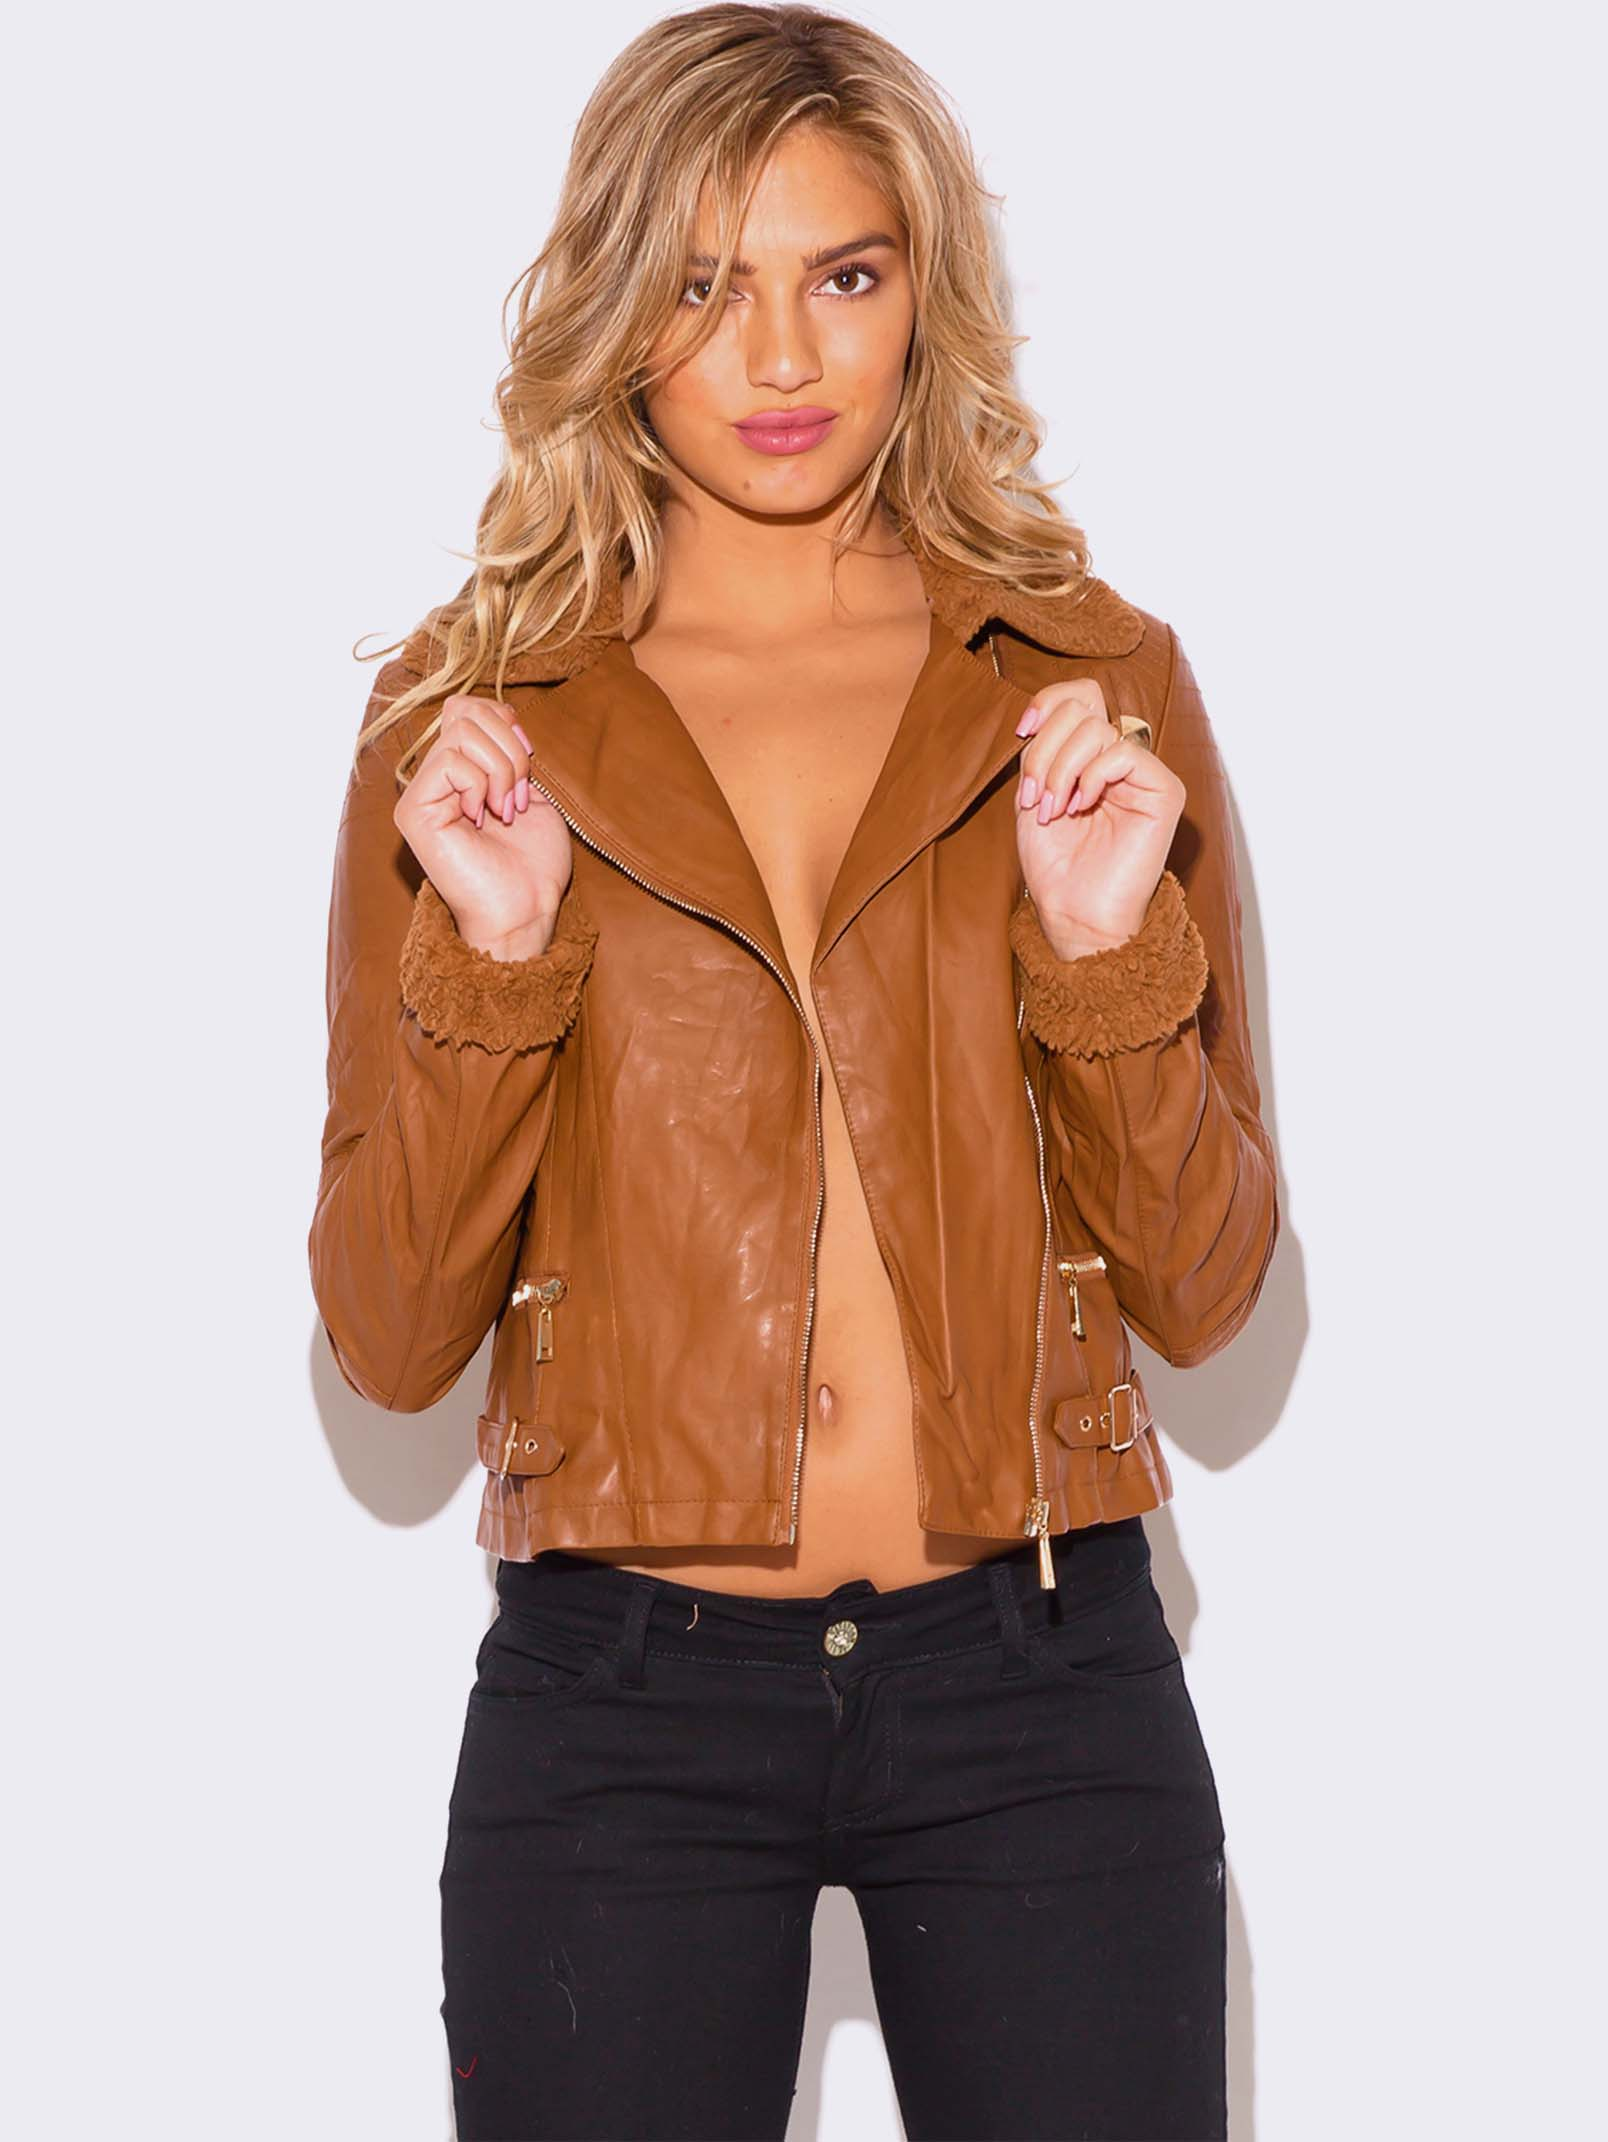 Images of Brown Faux Leather Jacket Womens - Reikian